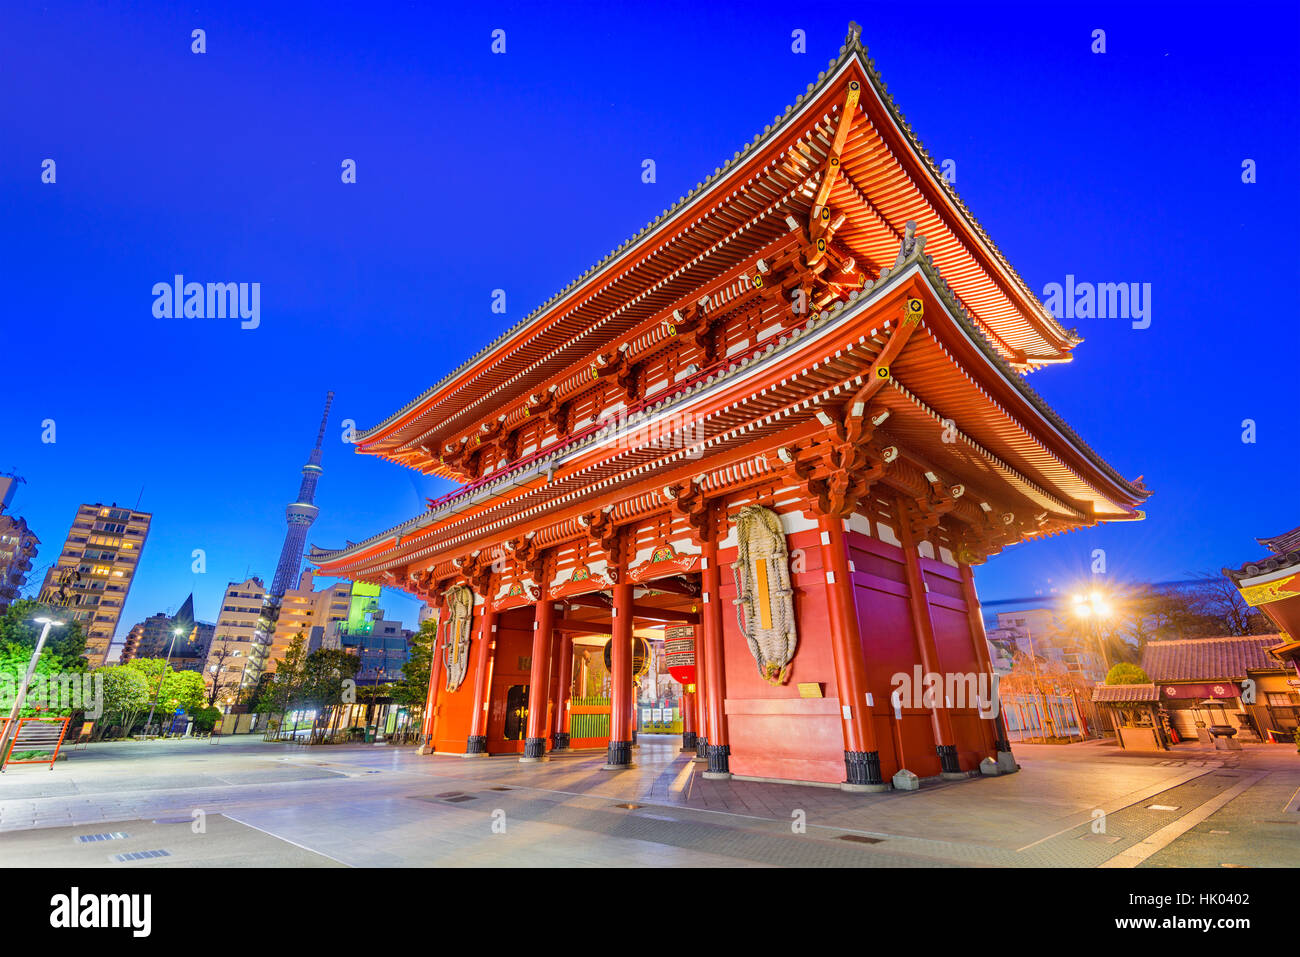 Sensoji Temple gate and Skytree Tower in Tokyo, Japan. - Stock Image